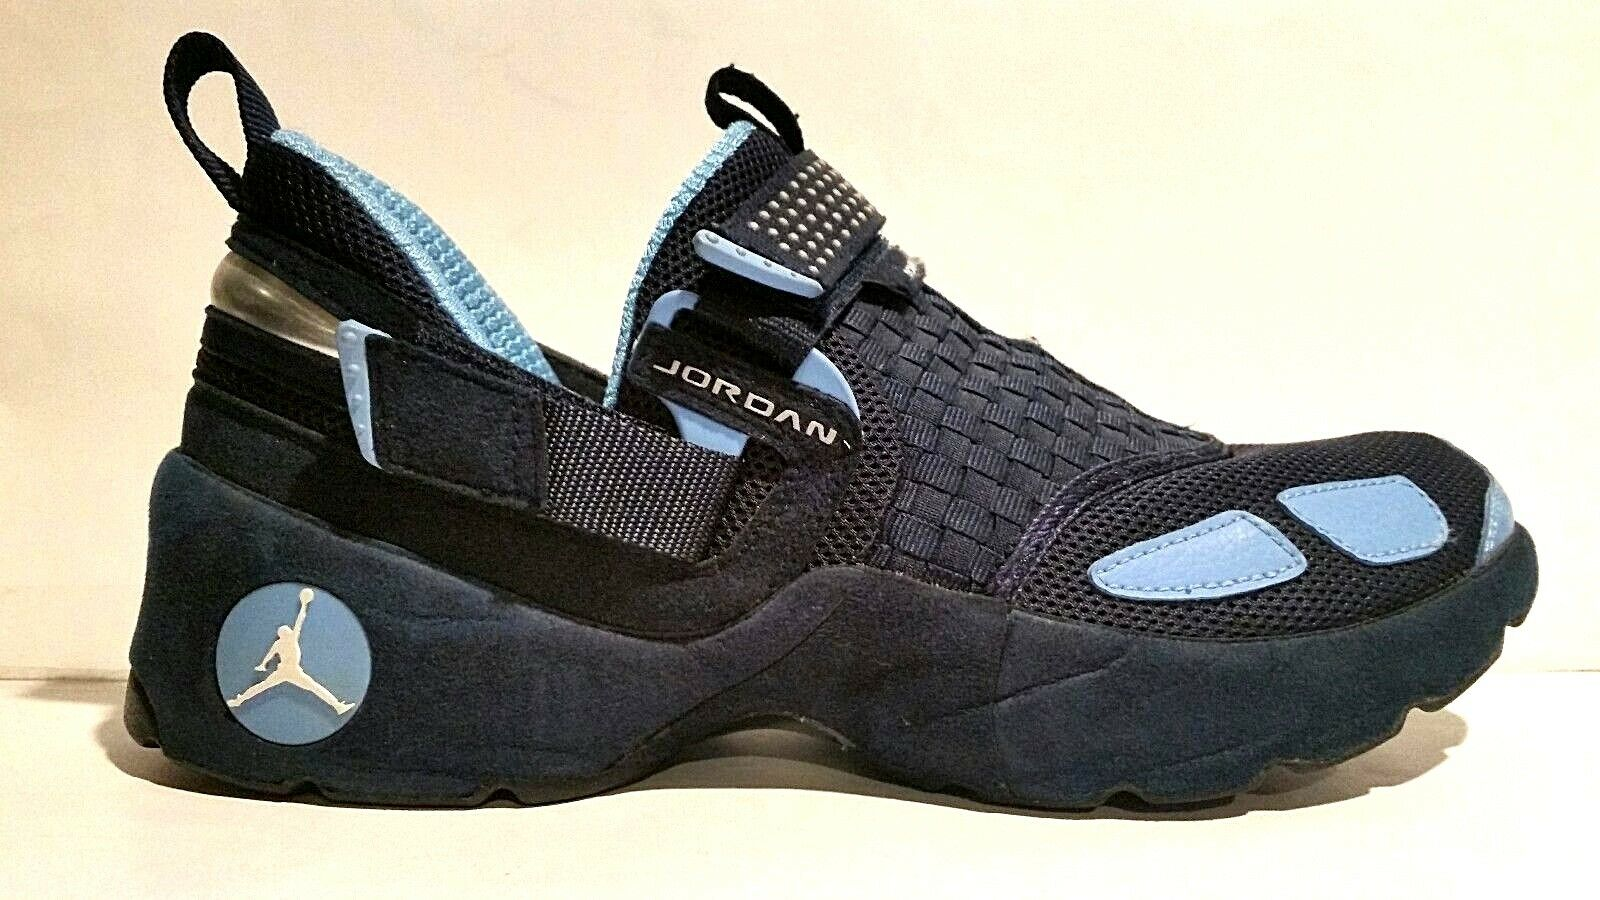 RARE 2006 JORDAN TRUNNER LX PREMIER 10.5 OBSIDIAN COLUMBIA BLUE WHITE 313321-411 Comfortable and good-looking